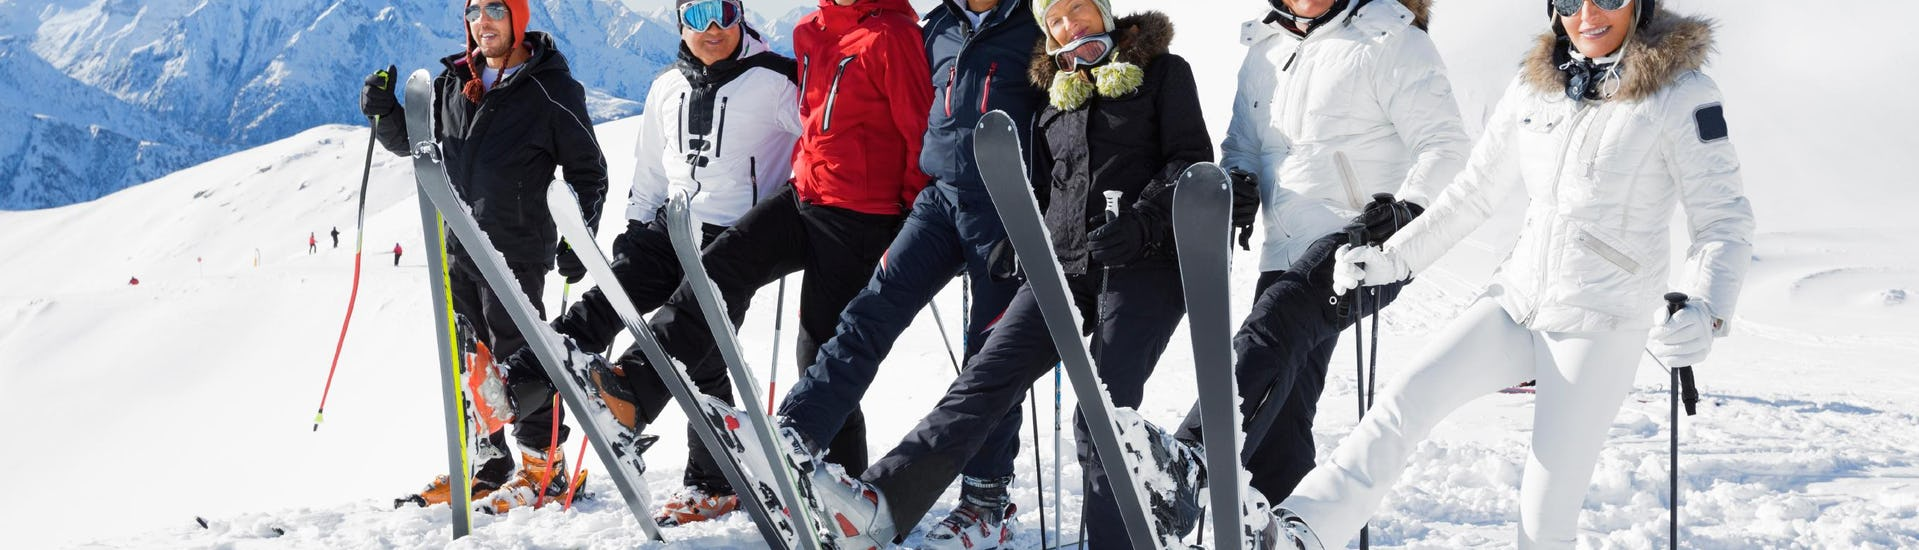 """adults are raising their skier in the Ski Lessons """"All-in-One"""" for Adults - Beginner"""